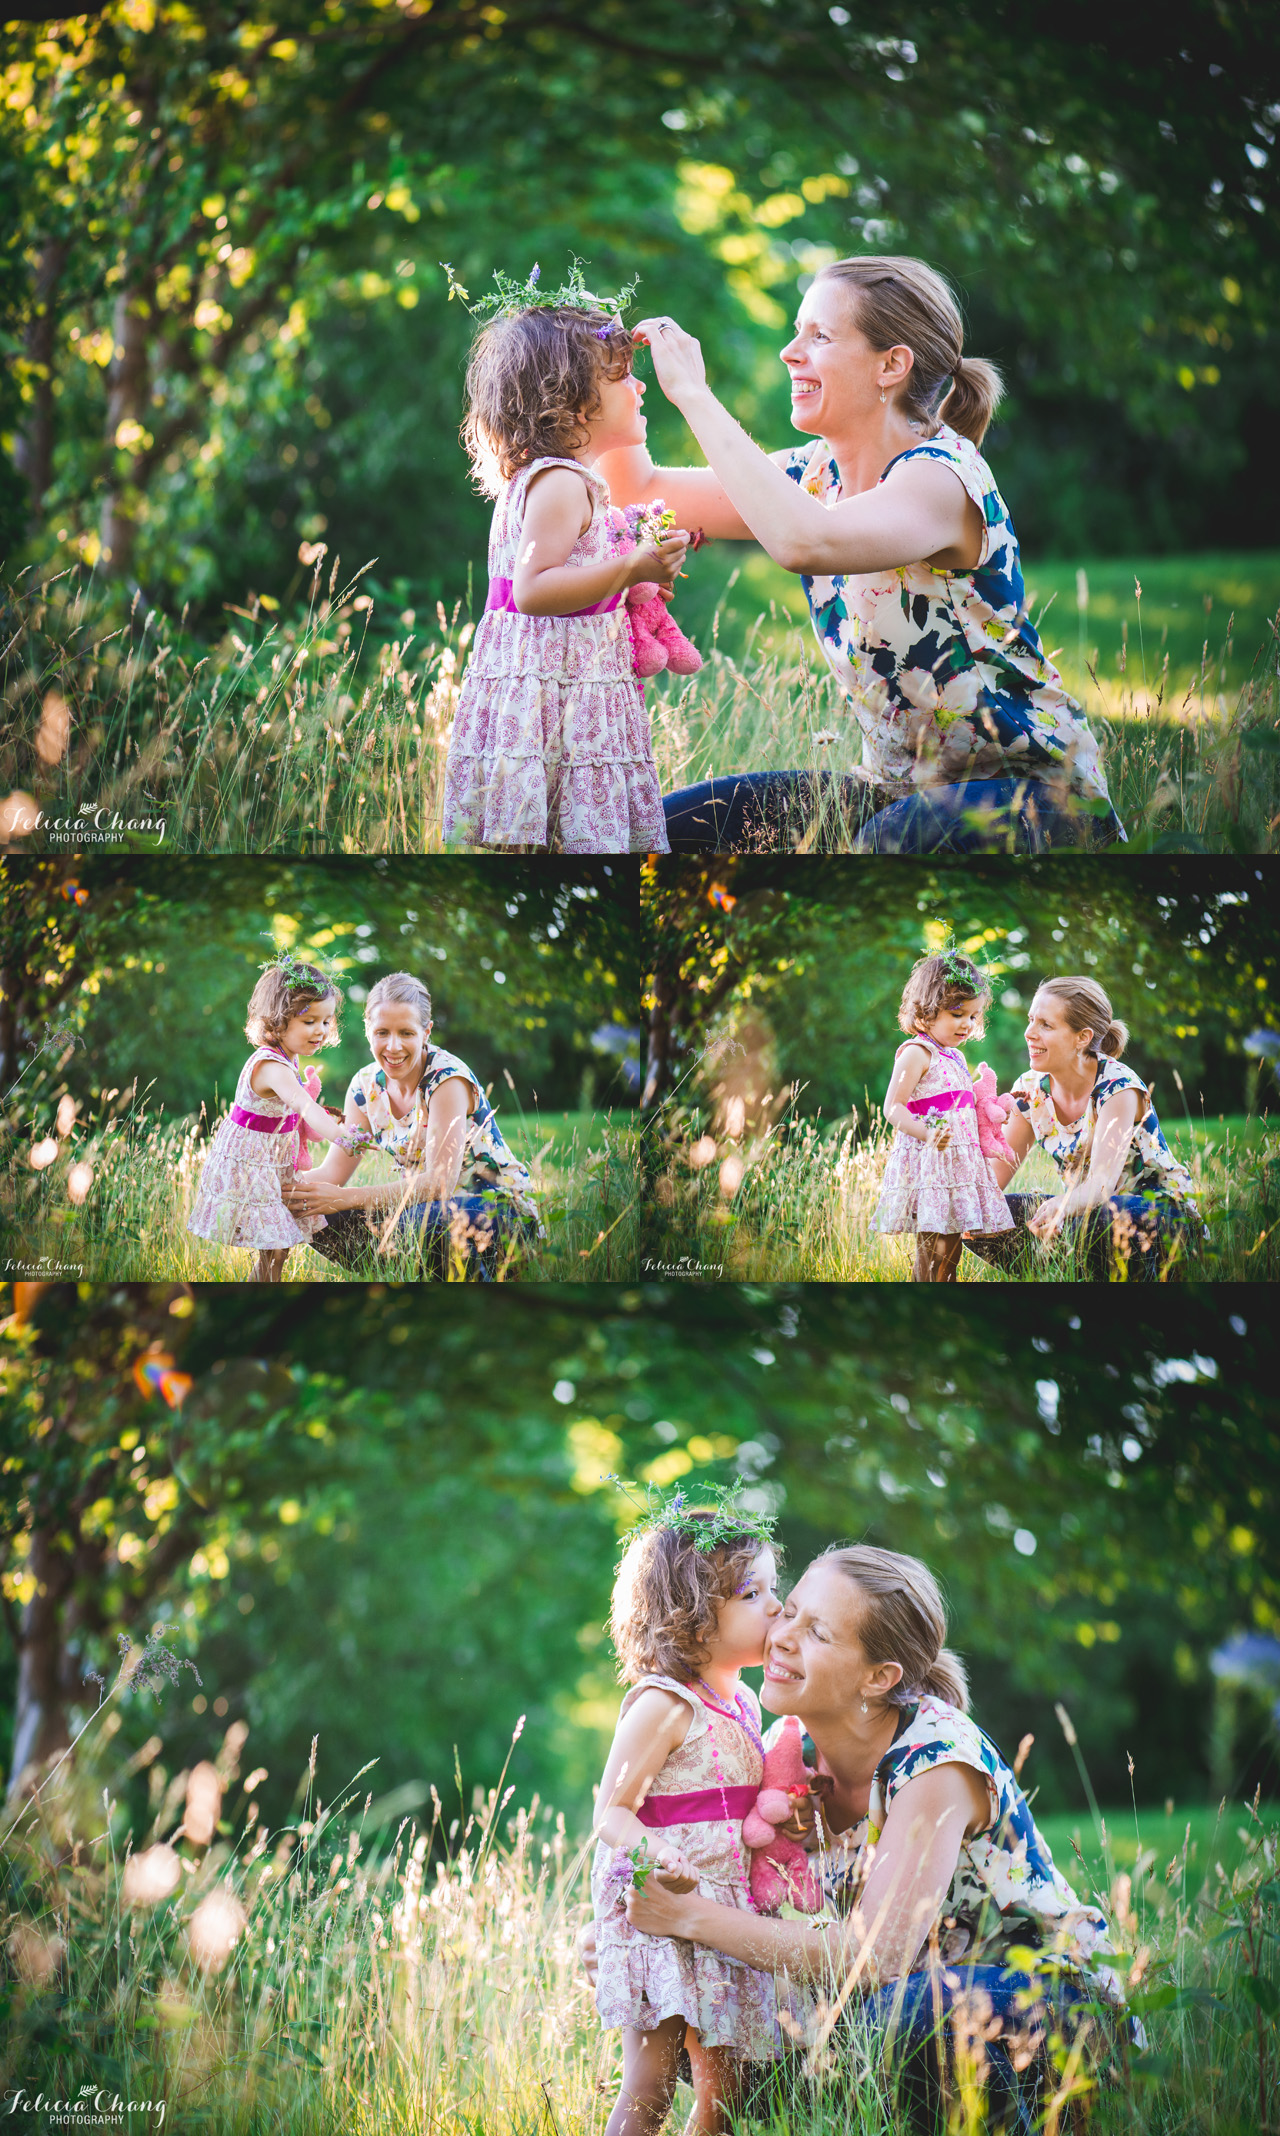 Mom + daughter with flower crown, West Vancouver Family Photographer, Felicia Chang Photography